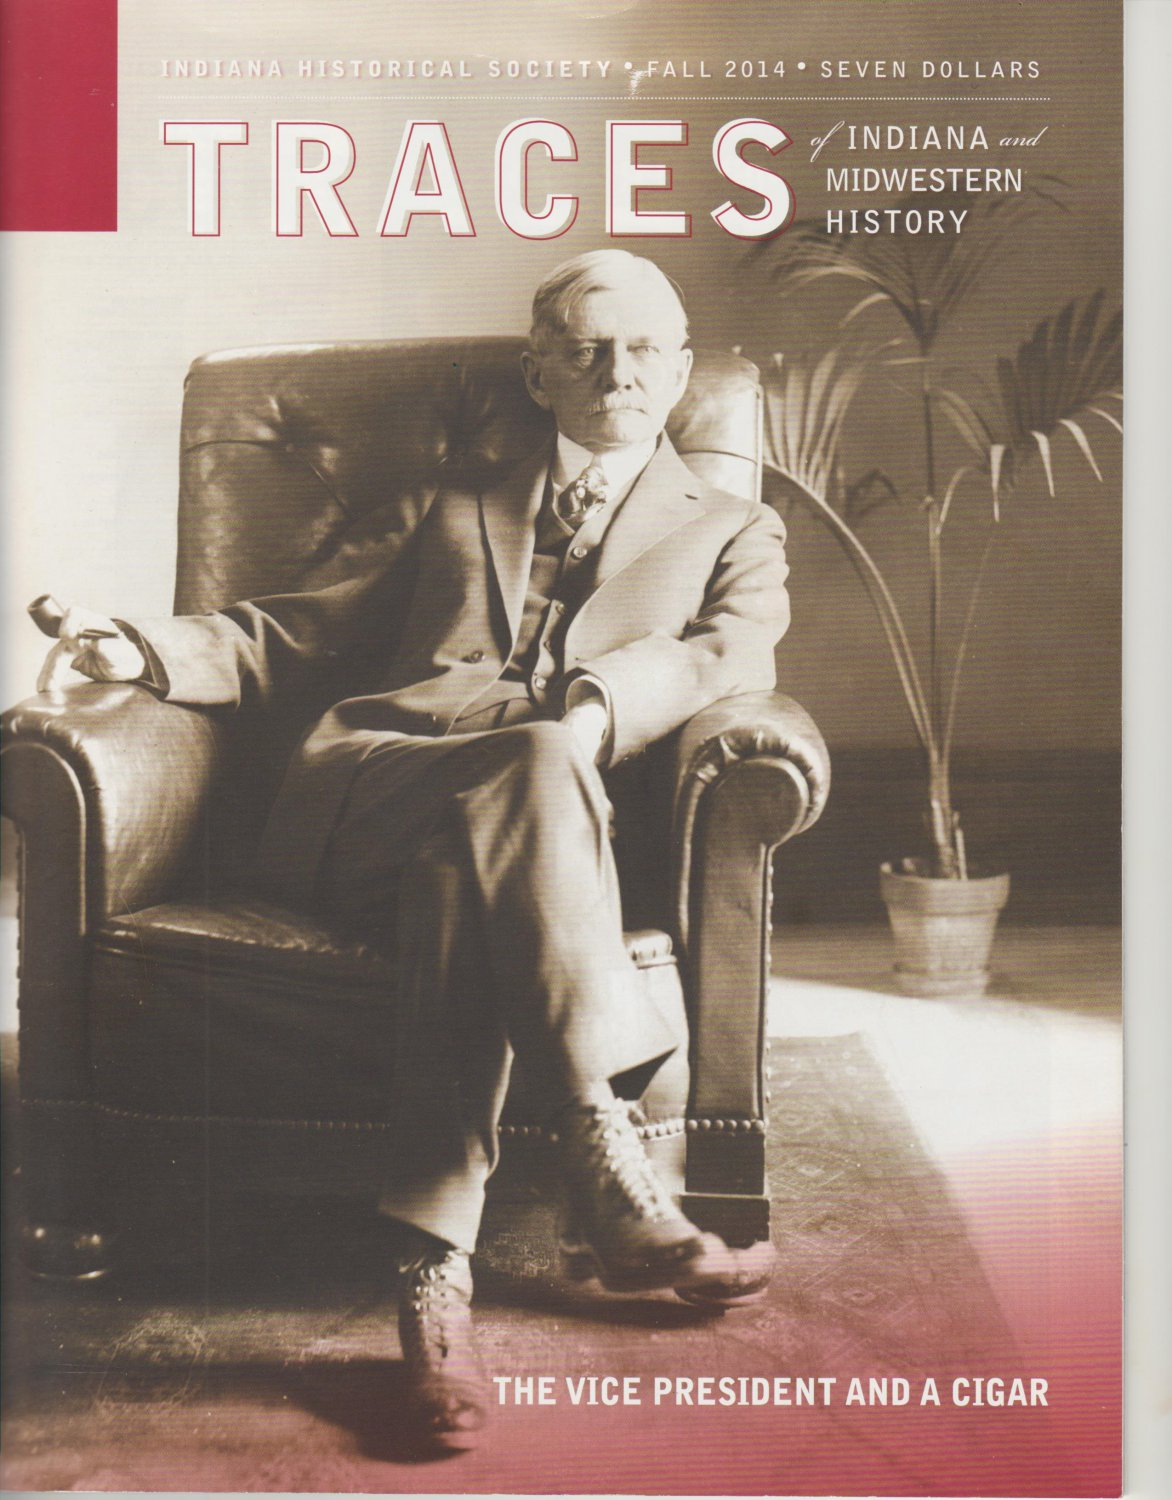 TRACES of Indiana and Midwestern History Fall 2014 Local History Back Issue